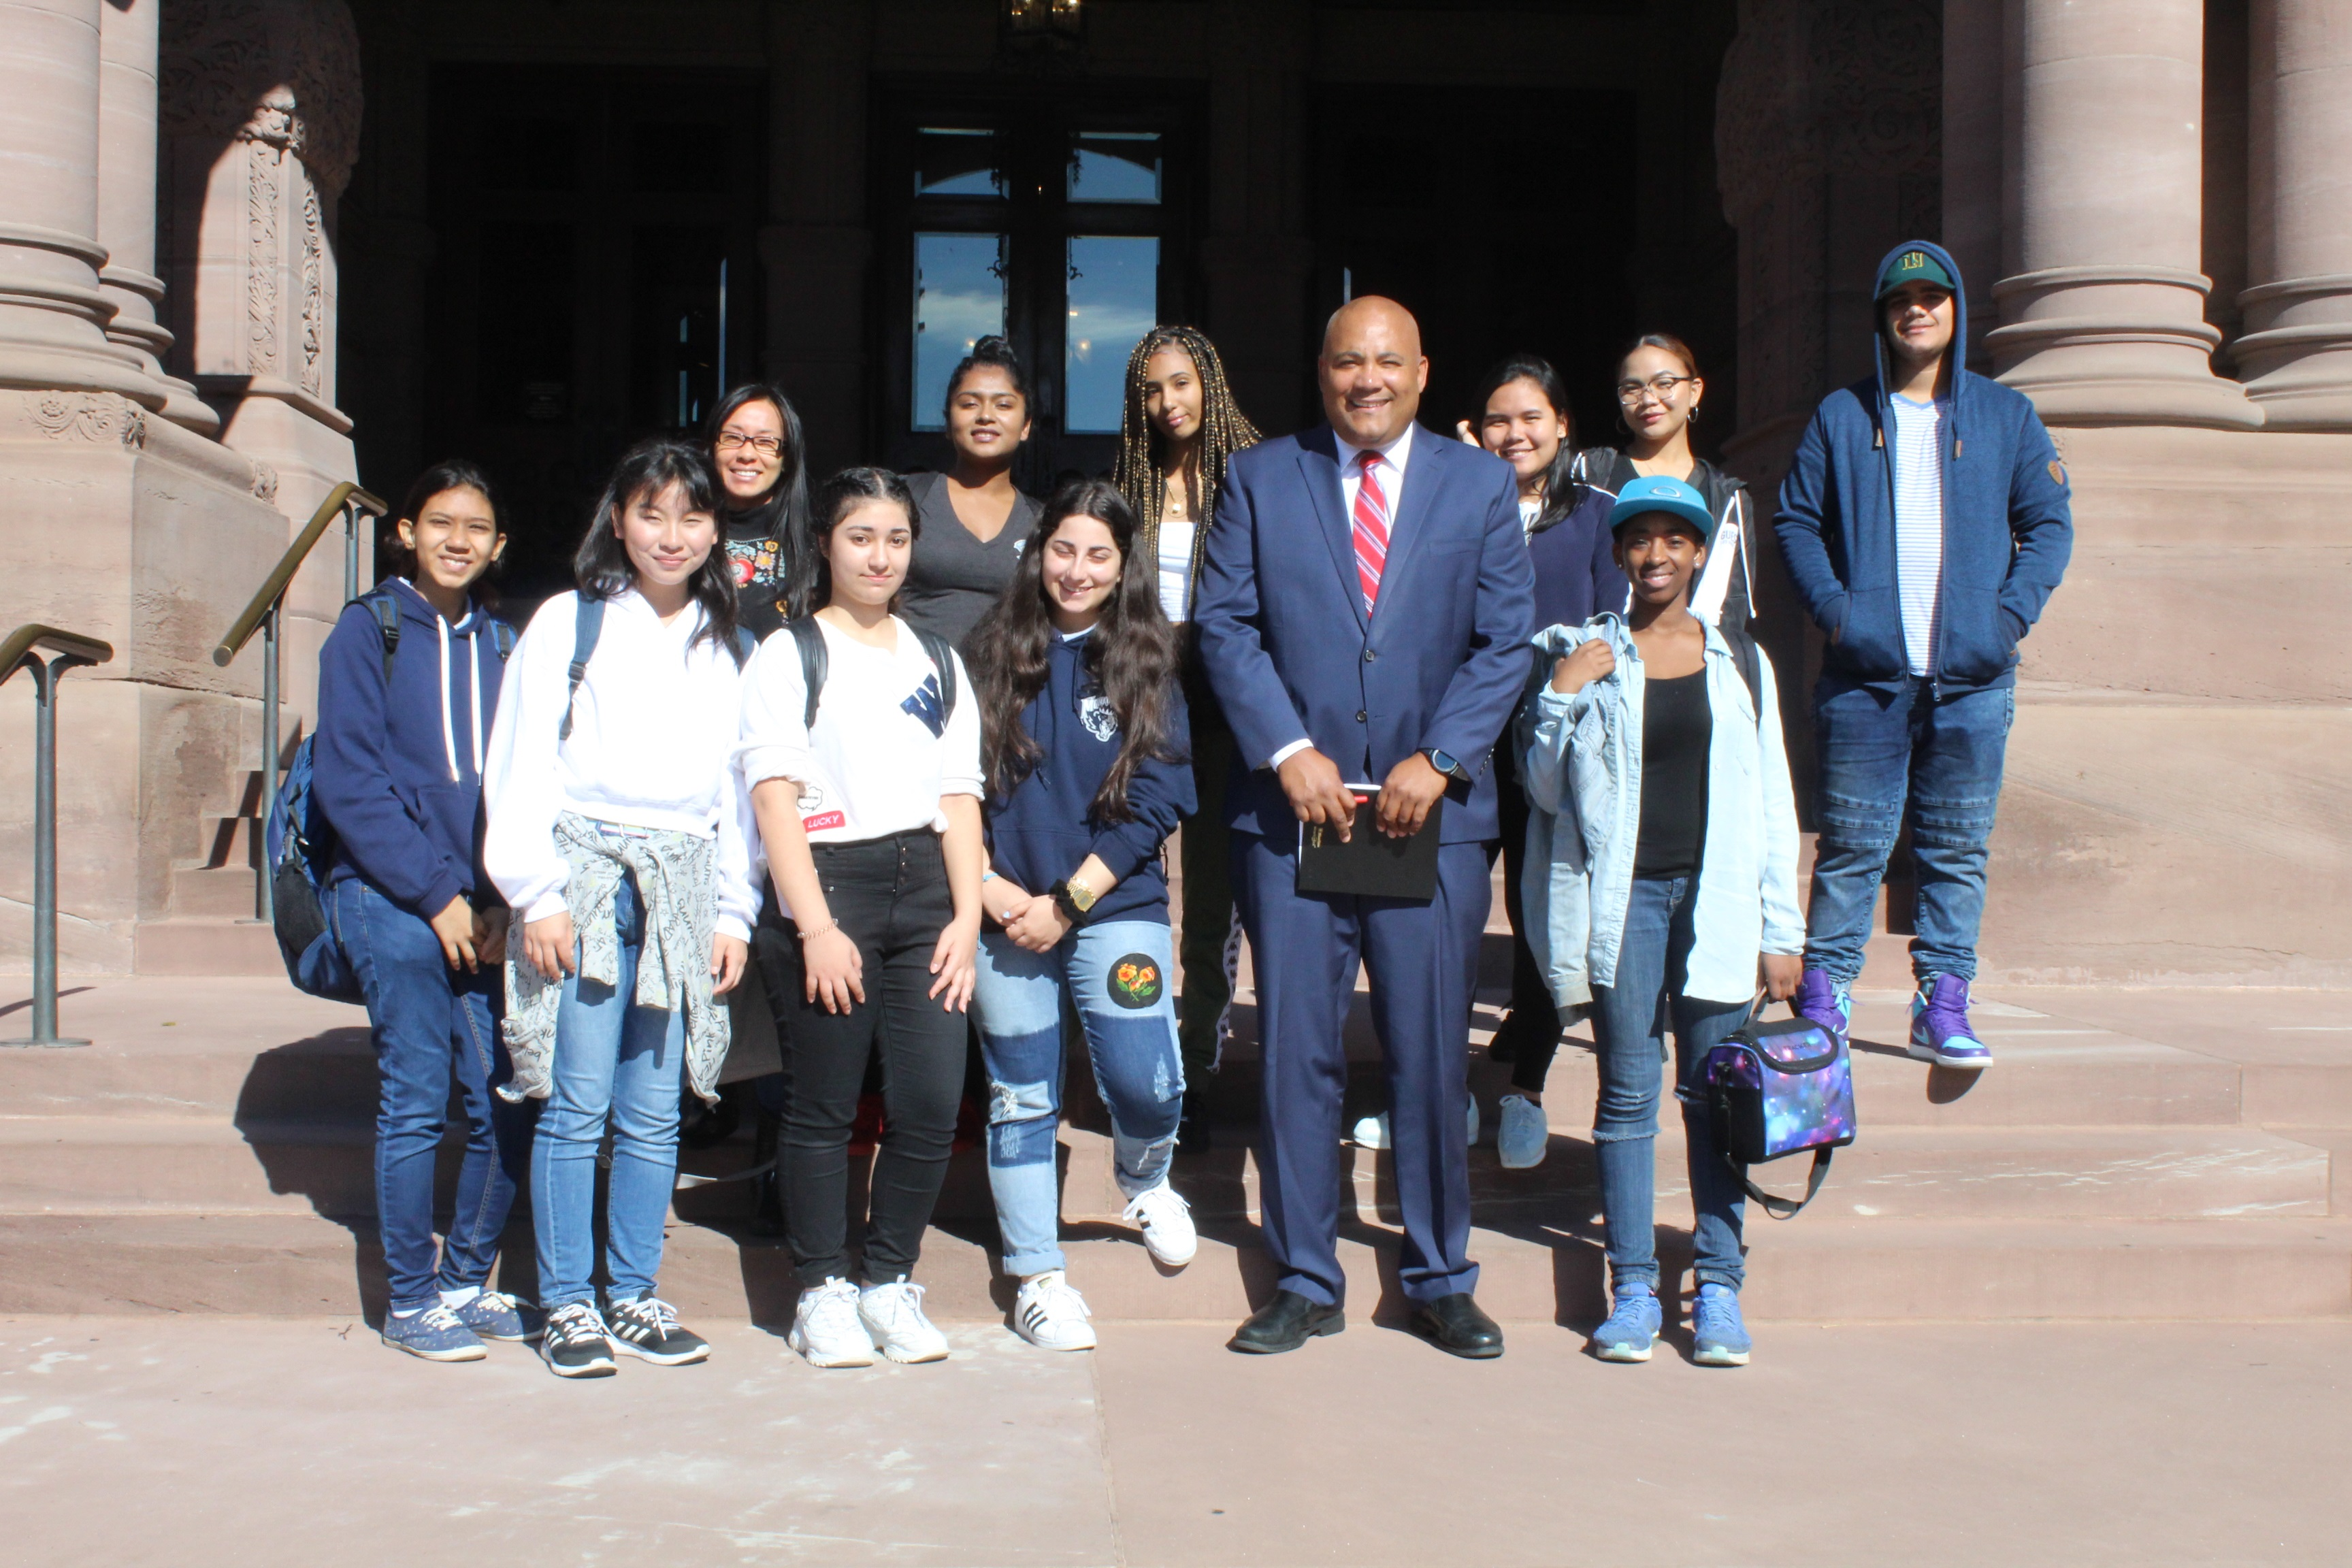 Trip to Queens Park: Meeting with Michael Coteau (MPP) open gallery